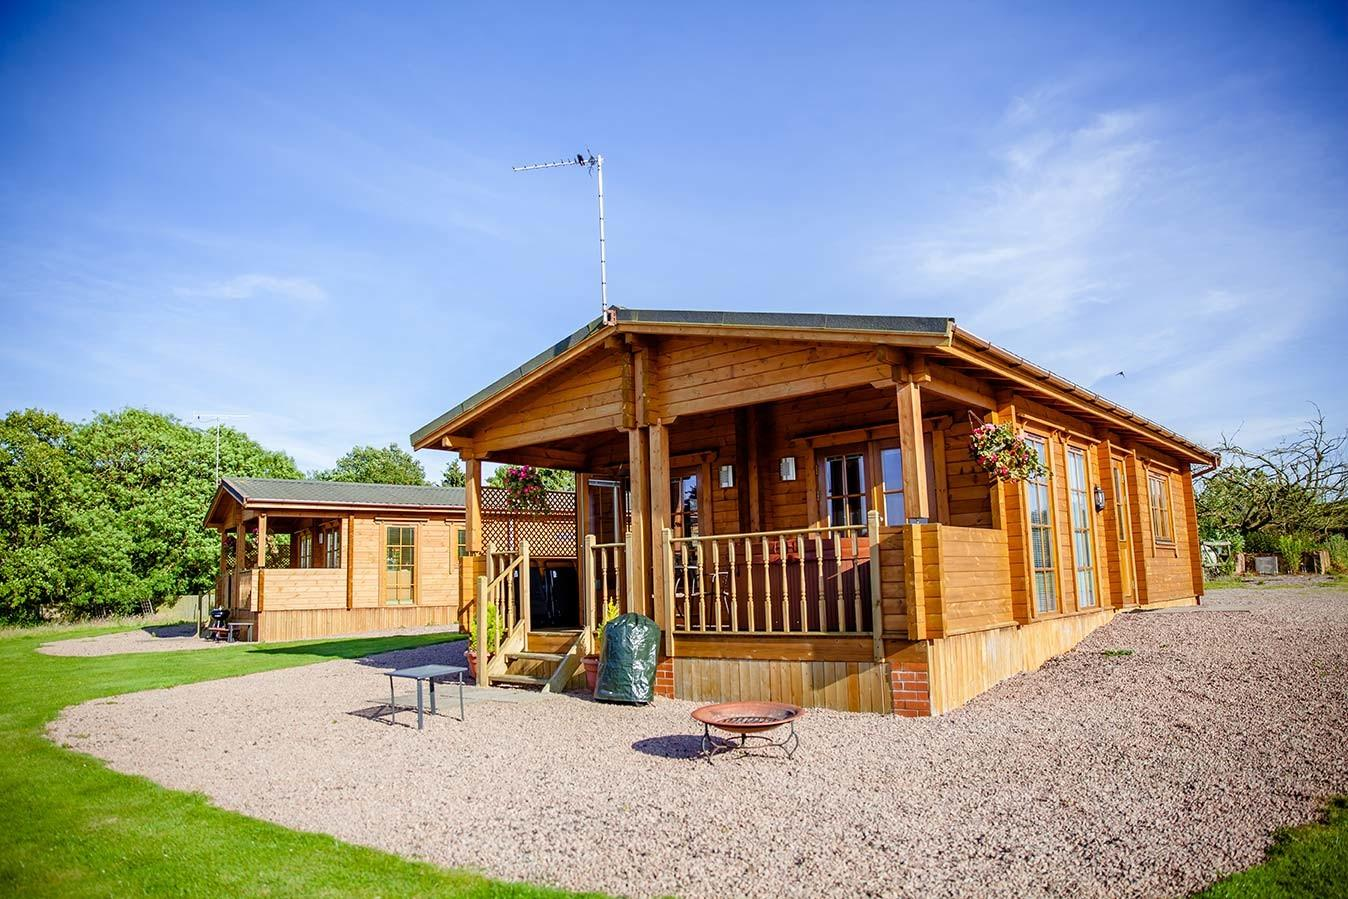 Refurbishment Forest Retreat Underway